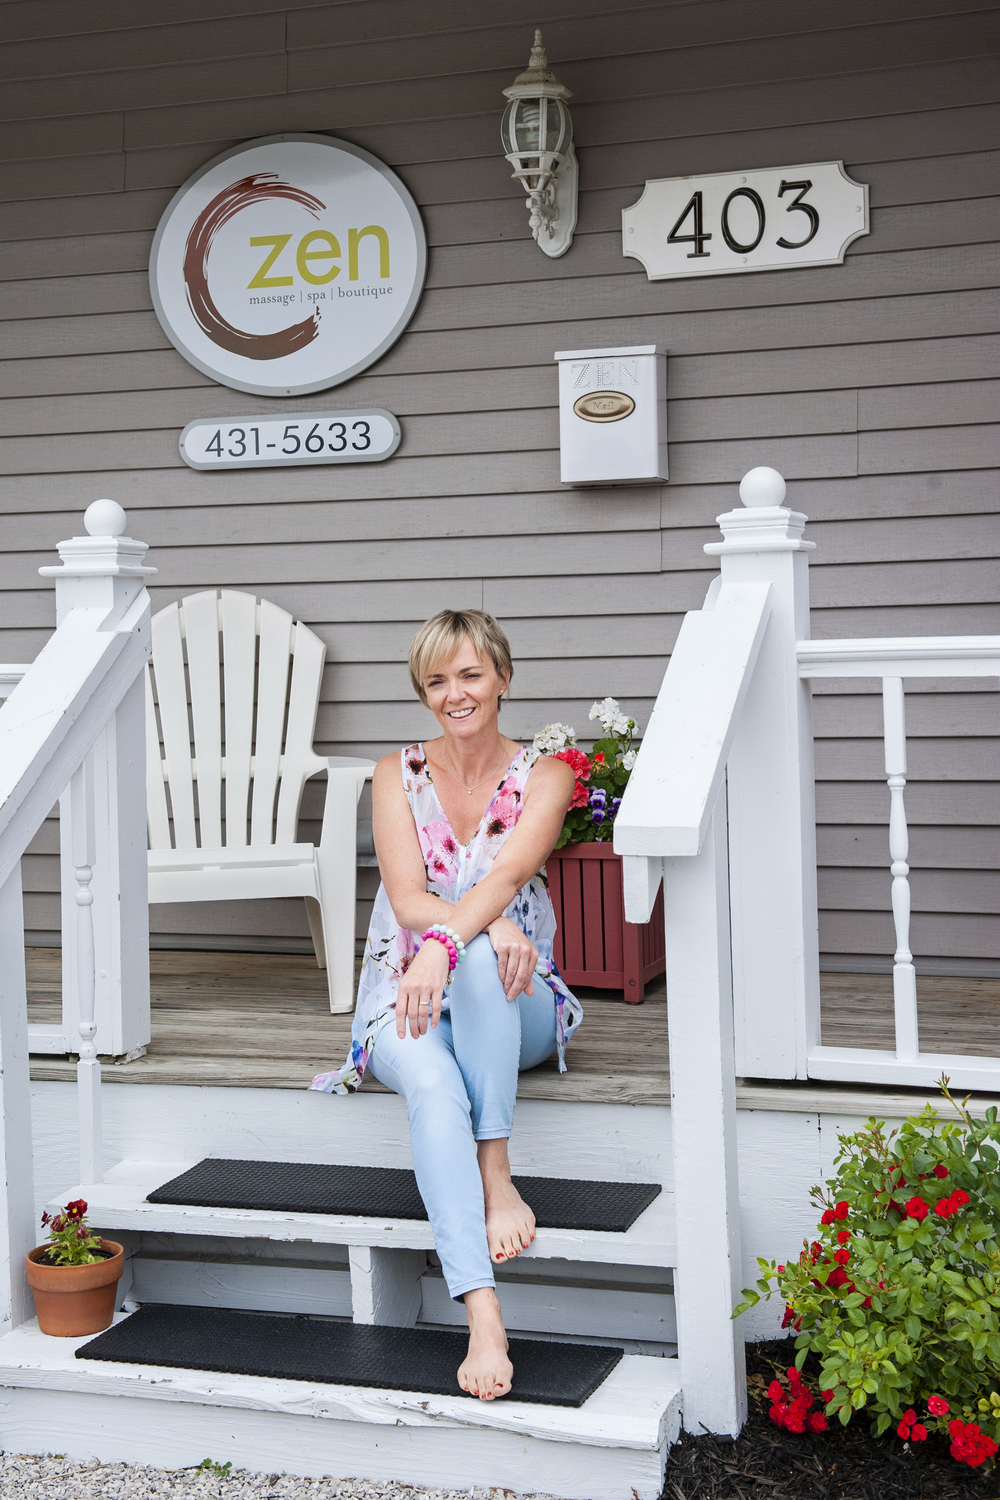 Meet Sharon Hataway at Zen. Rhonda Taylor Photography  for Love IT! Evv Magazine